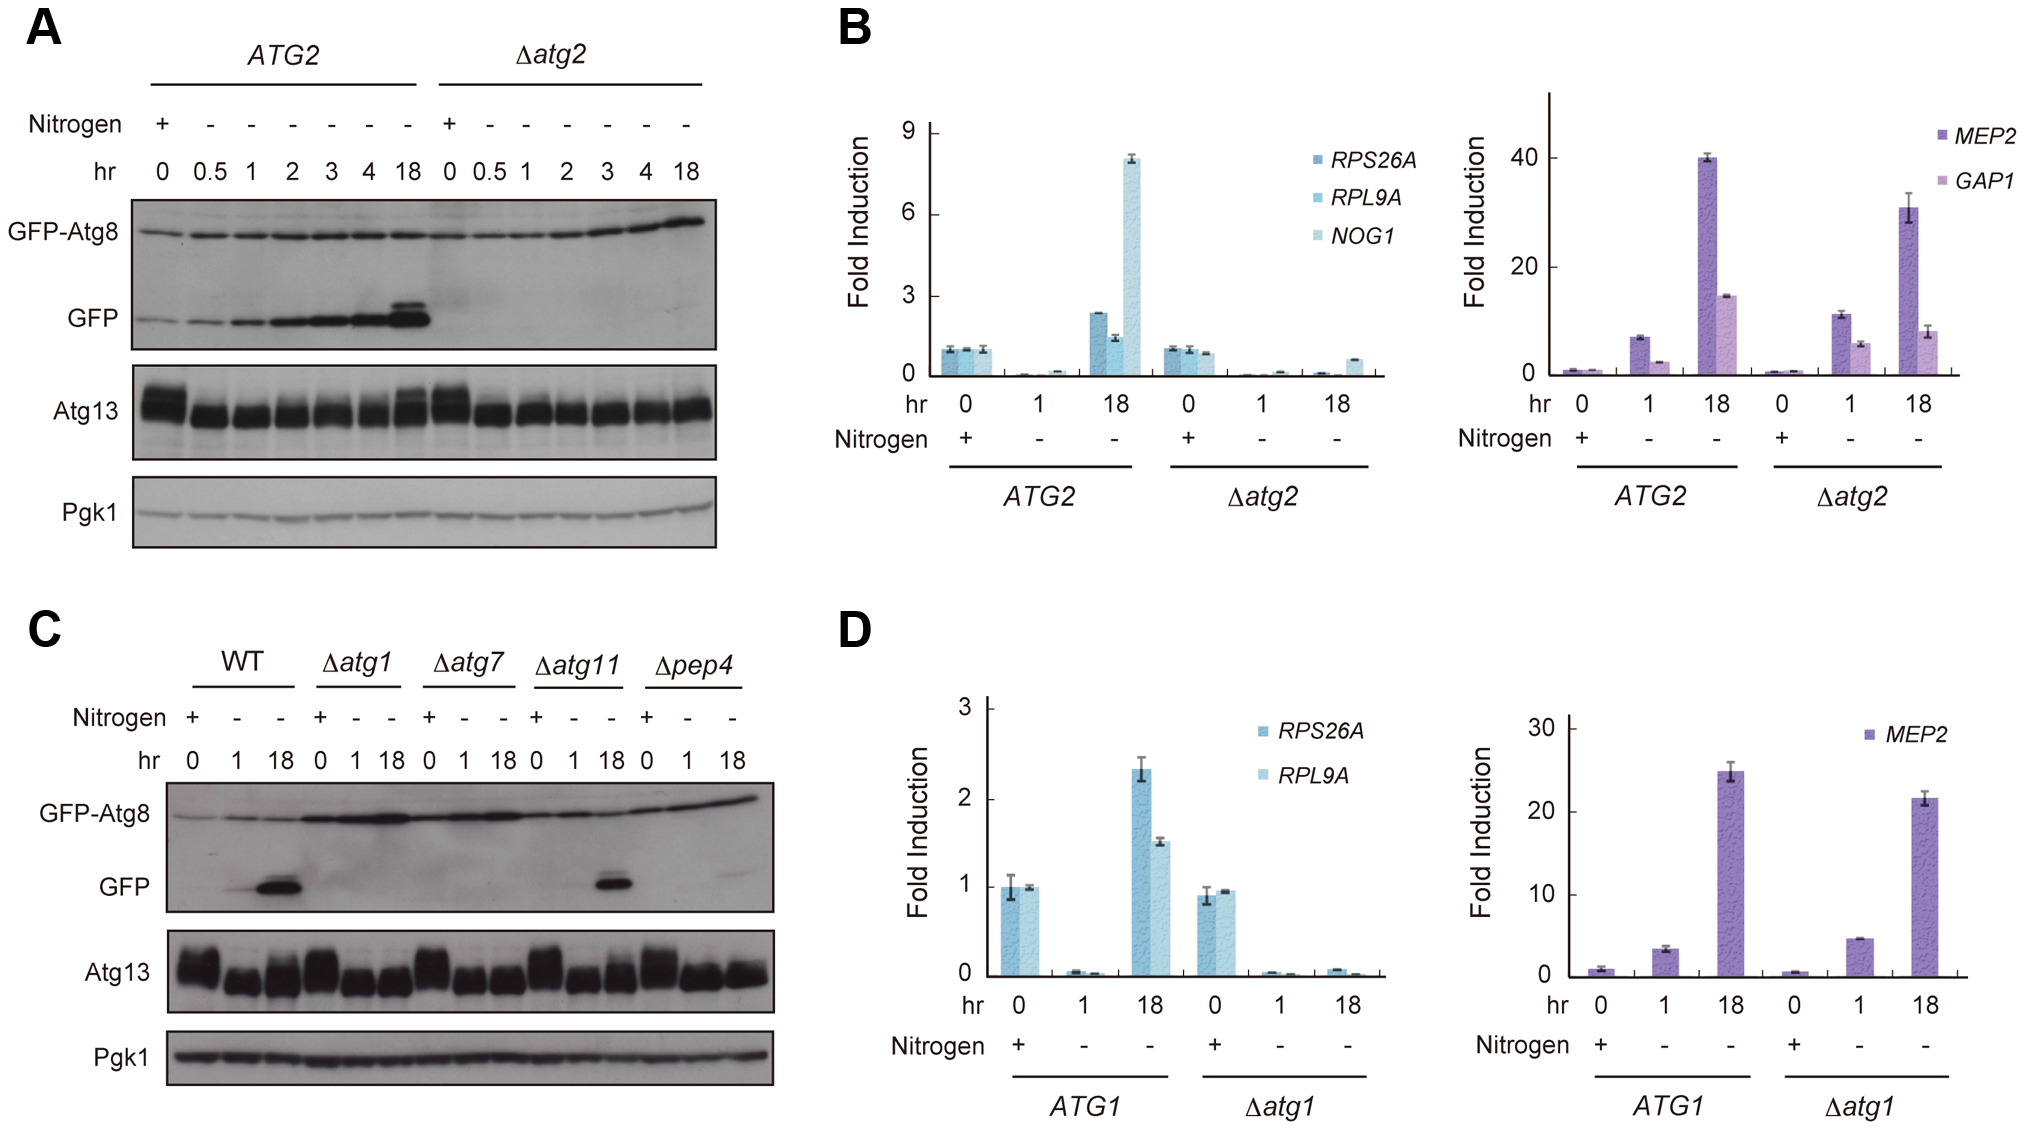 Reduced TORC1 activity by nitrogen starvation is partially recovered in an autophagy-dependent manner.